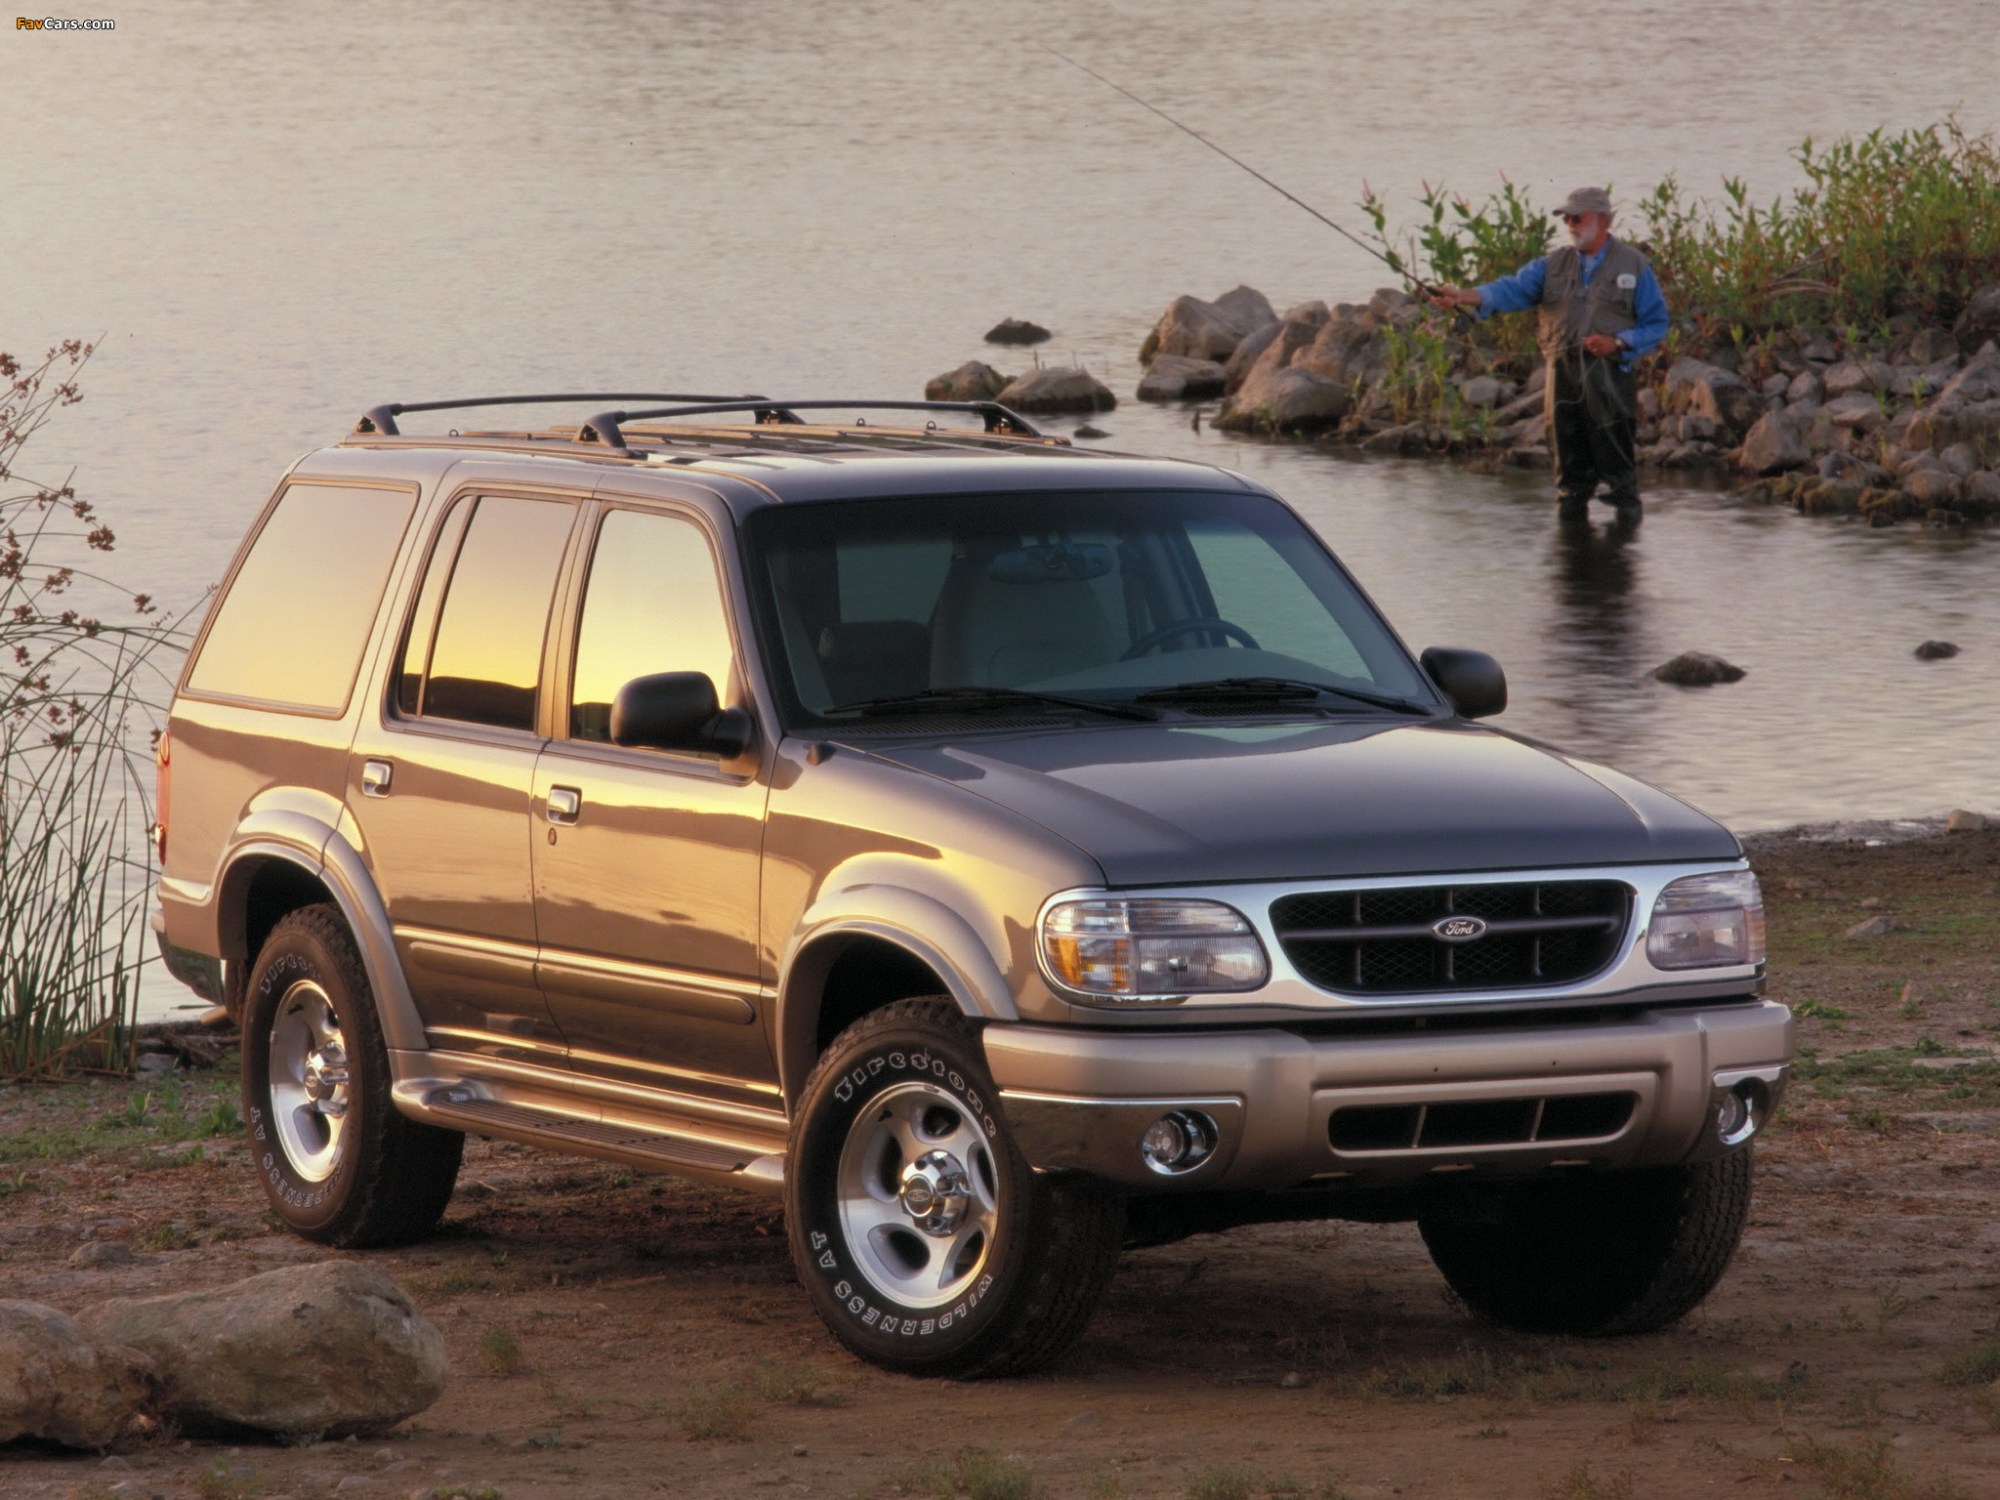 hight resolution of ford explorer 1994 2001 wallpapers 2048 x 1536